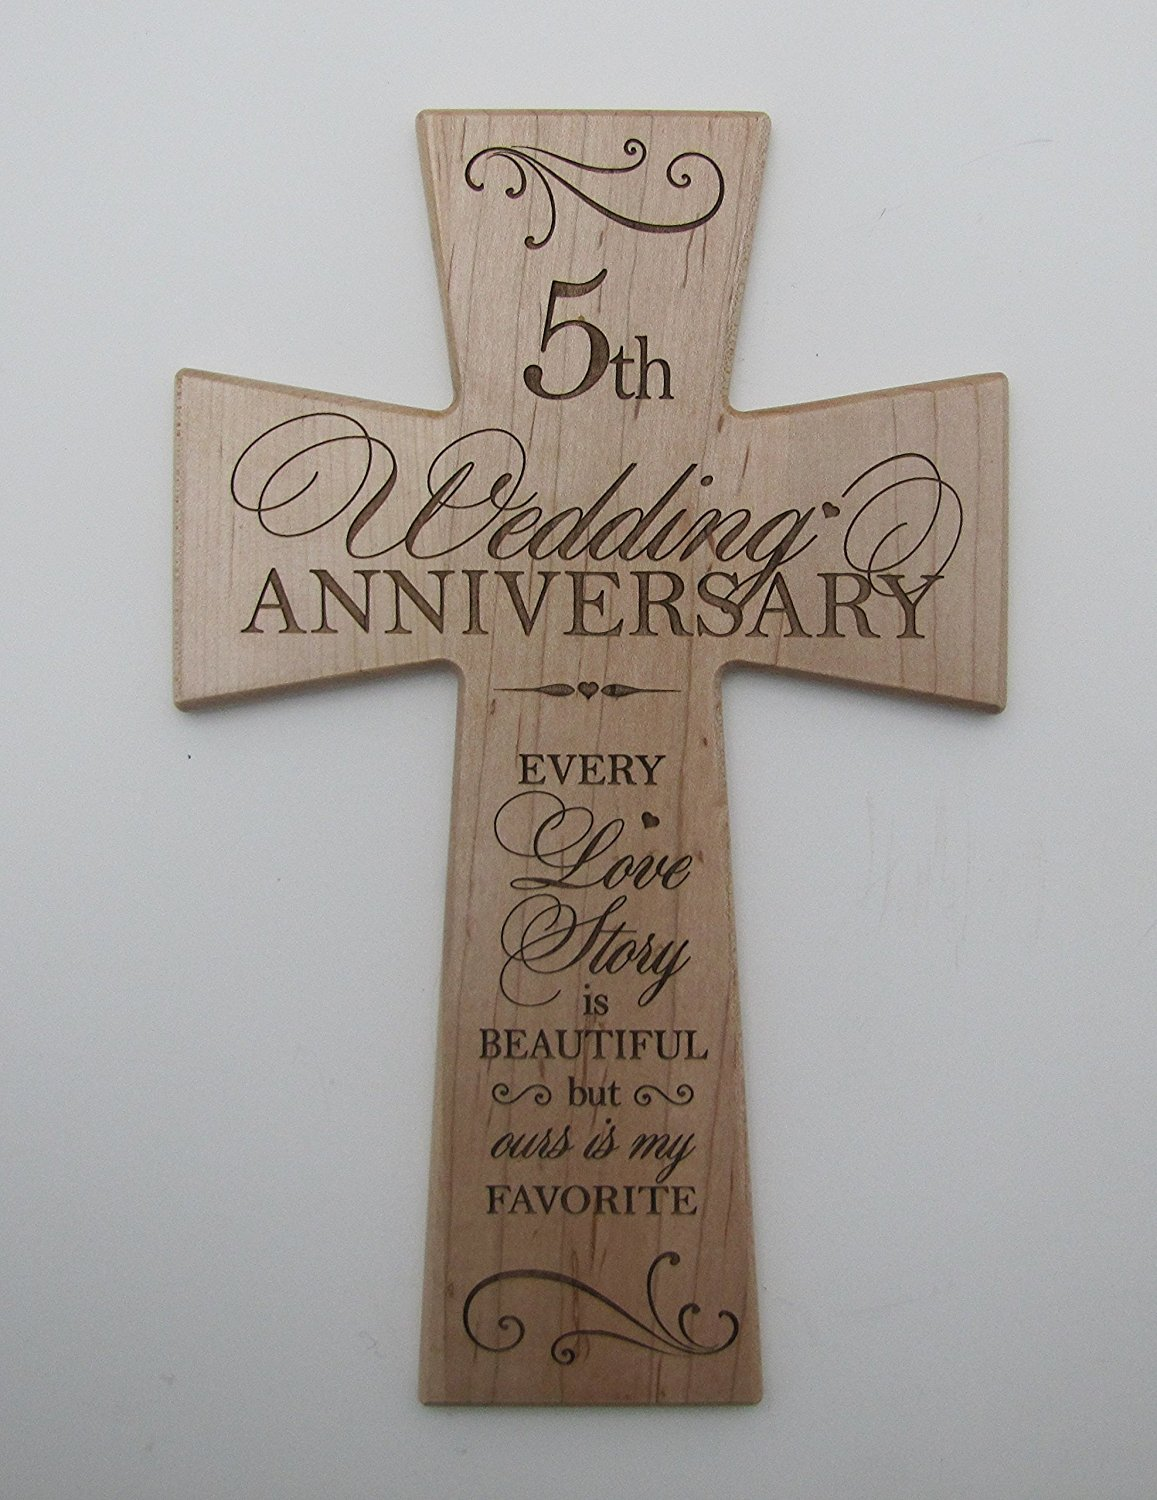 Buy 5th Wedding Anniversary Maple Wood Wall Cross Gift for Couple, 5 ...